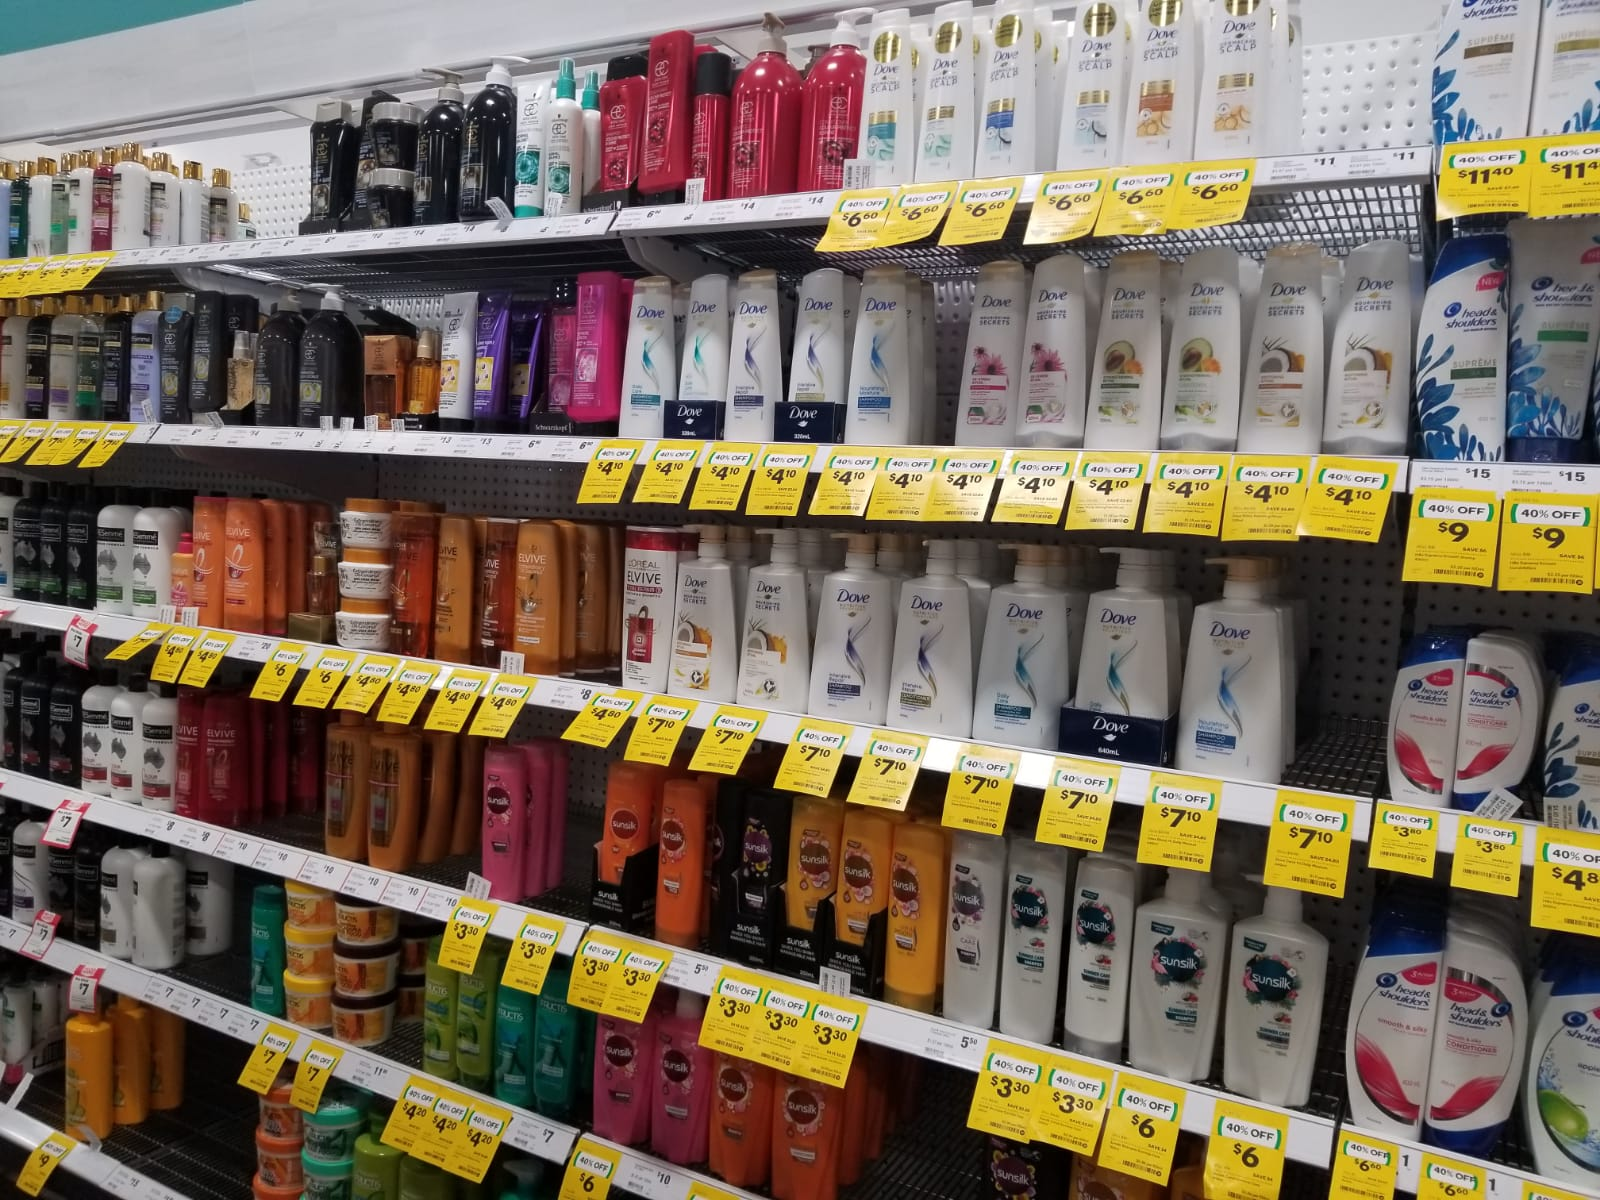 Why should we care about our personal care routines?